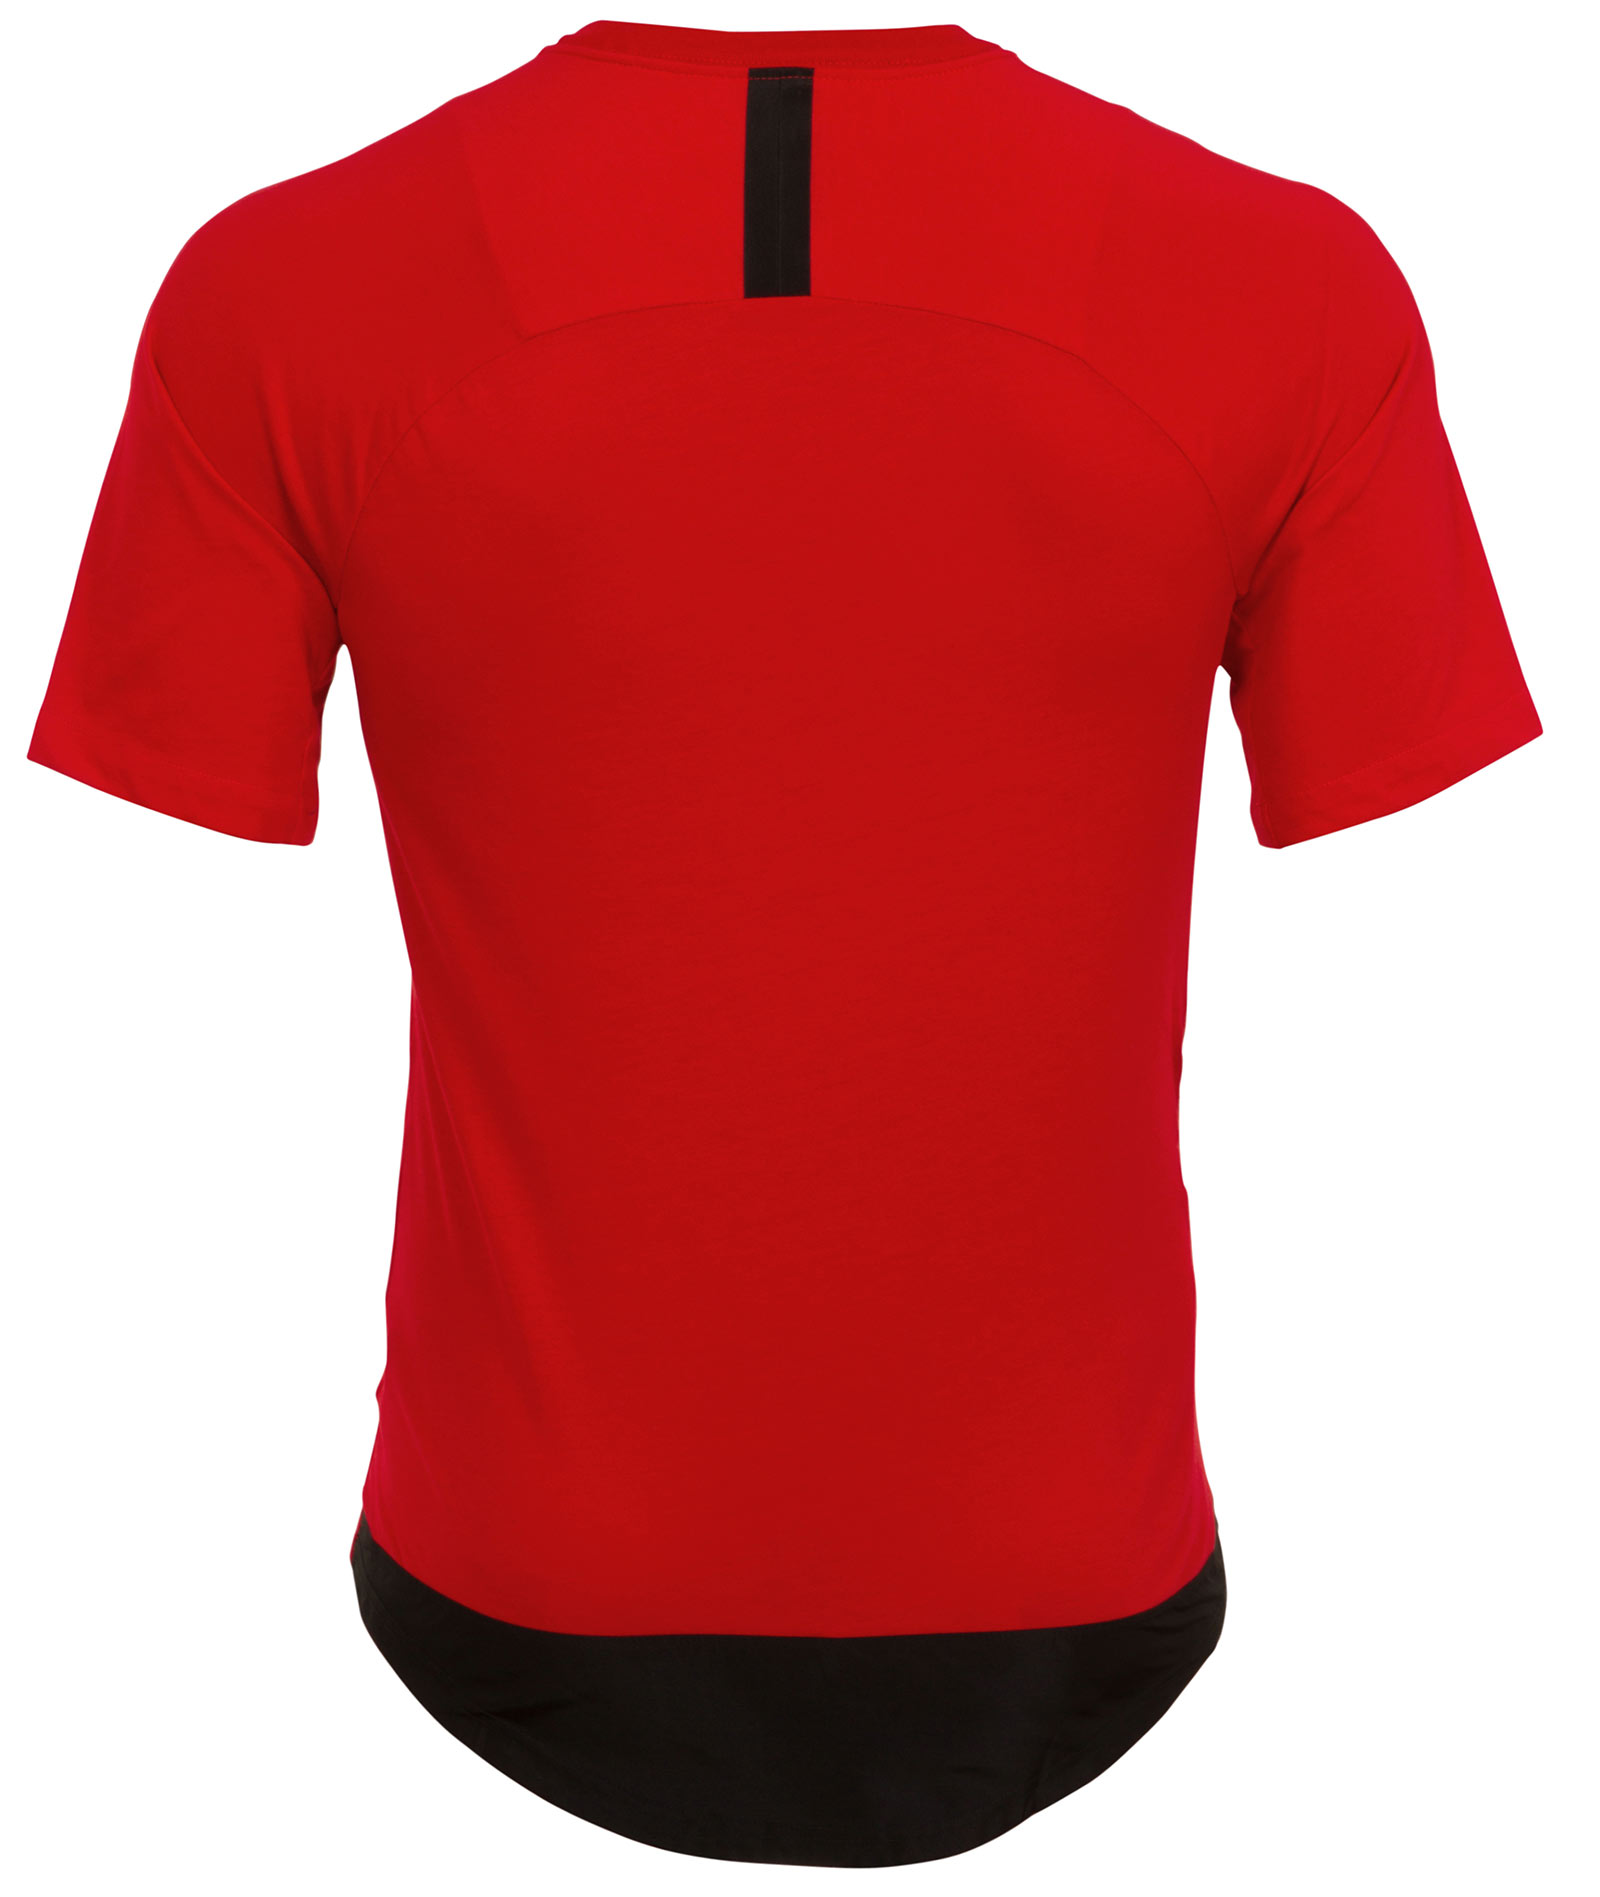 New-Nike-Sportswear-Bonded-Mens-Red-Short-Sleeve-Top-T-shirt-Size-M thumbnail 2